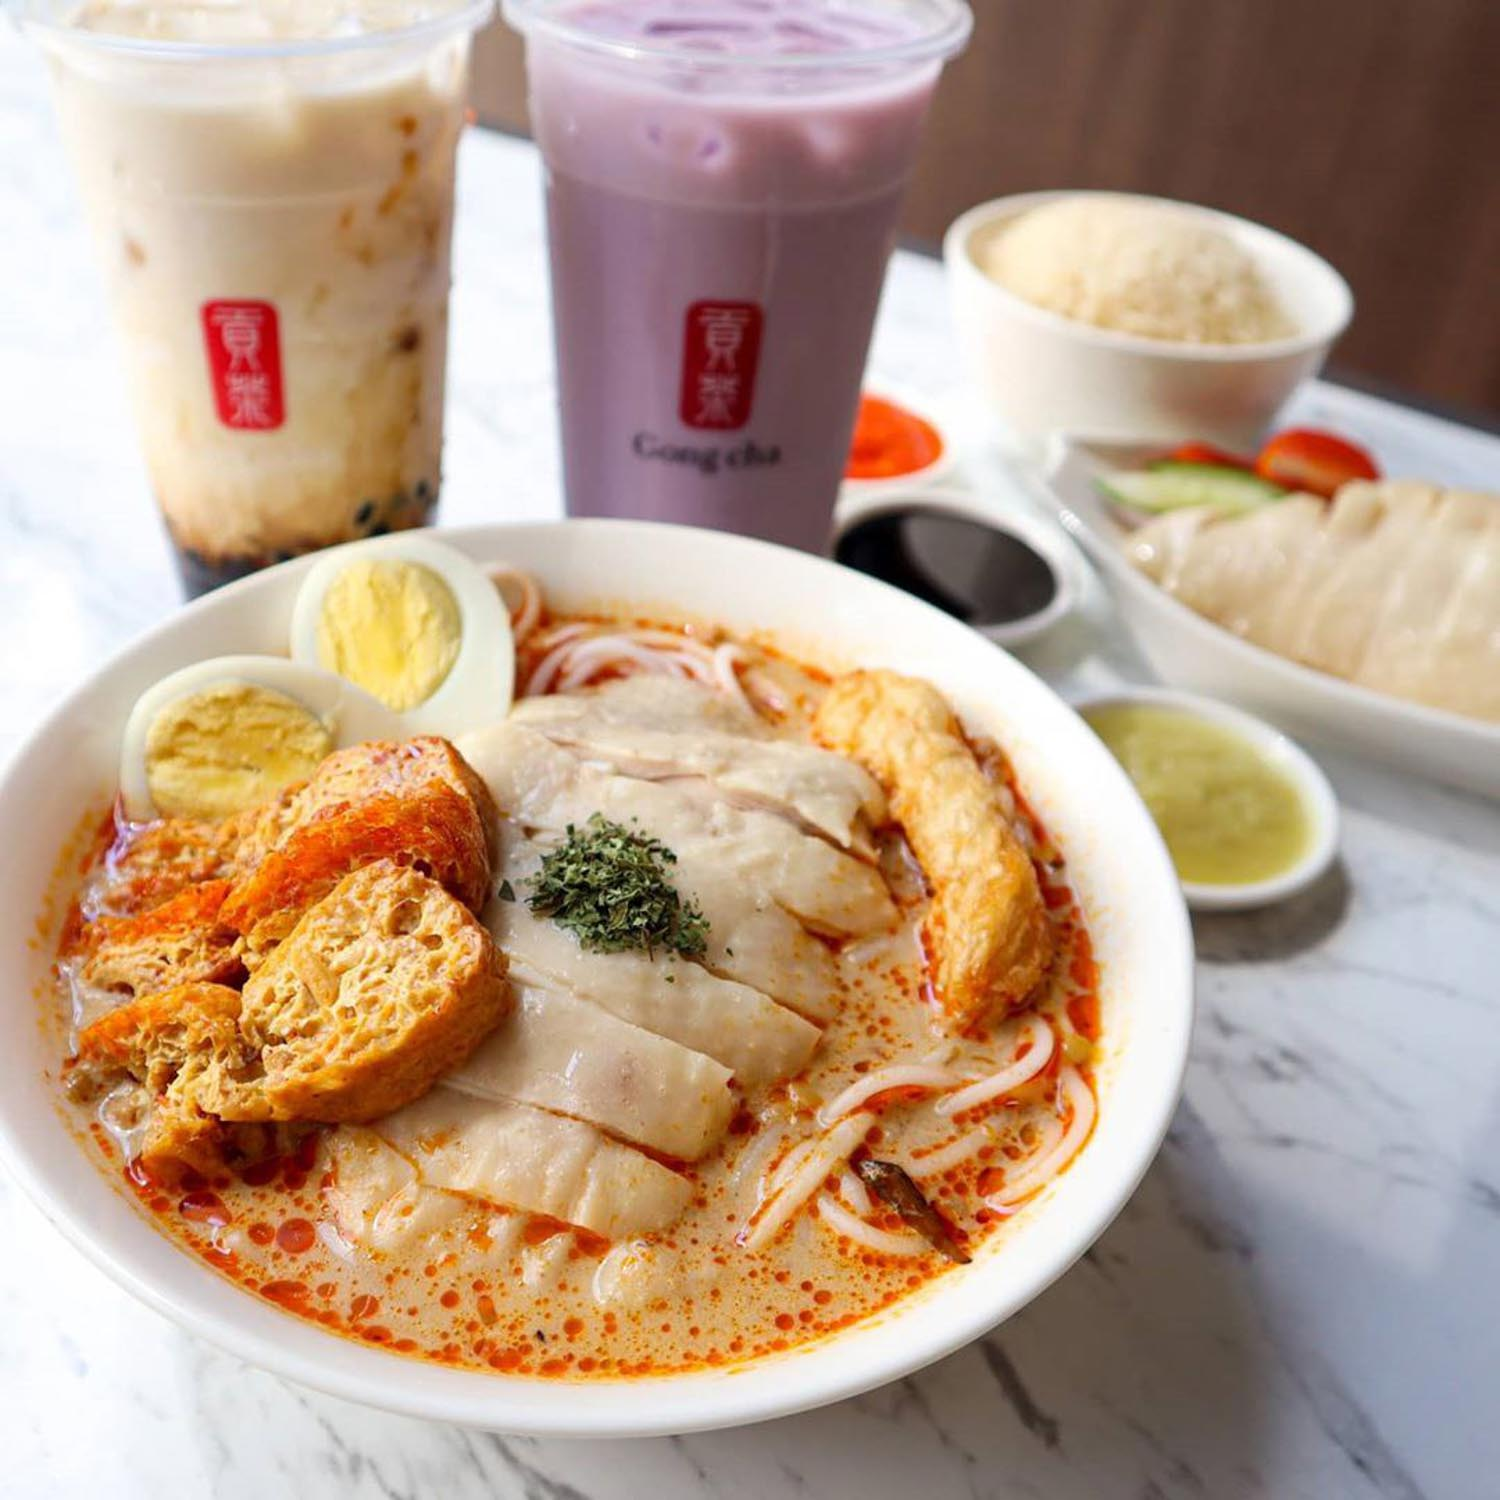 Gong Cha Delivery - Pic 2